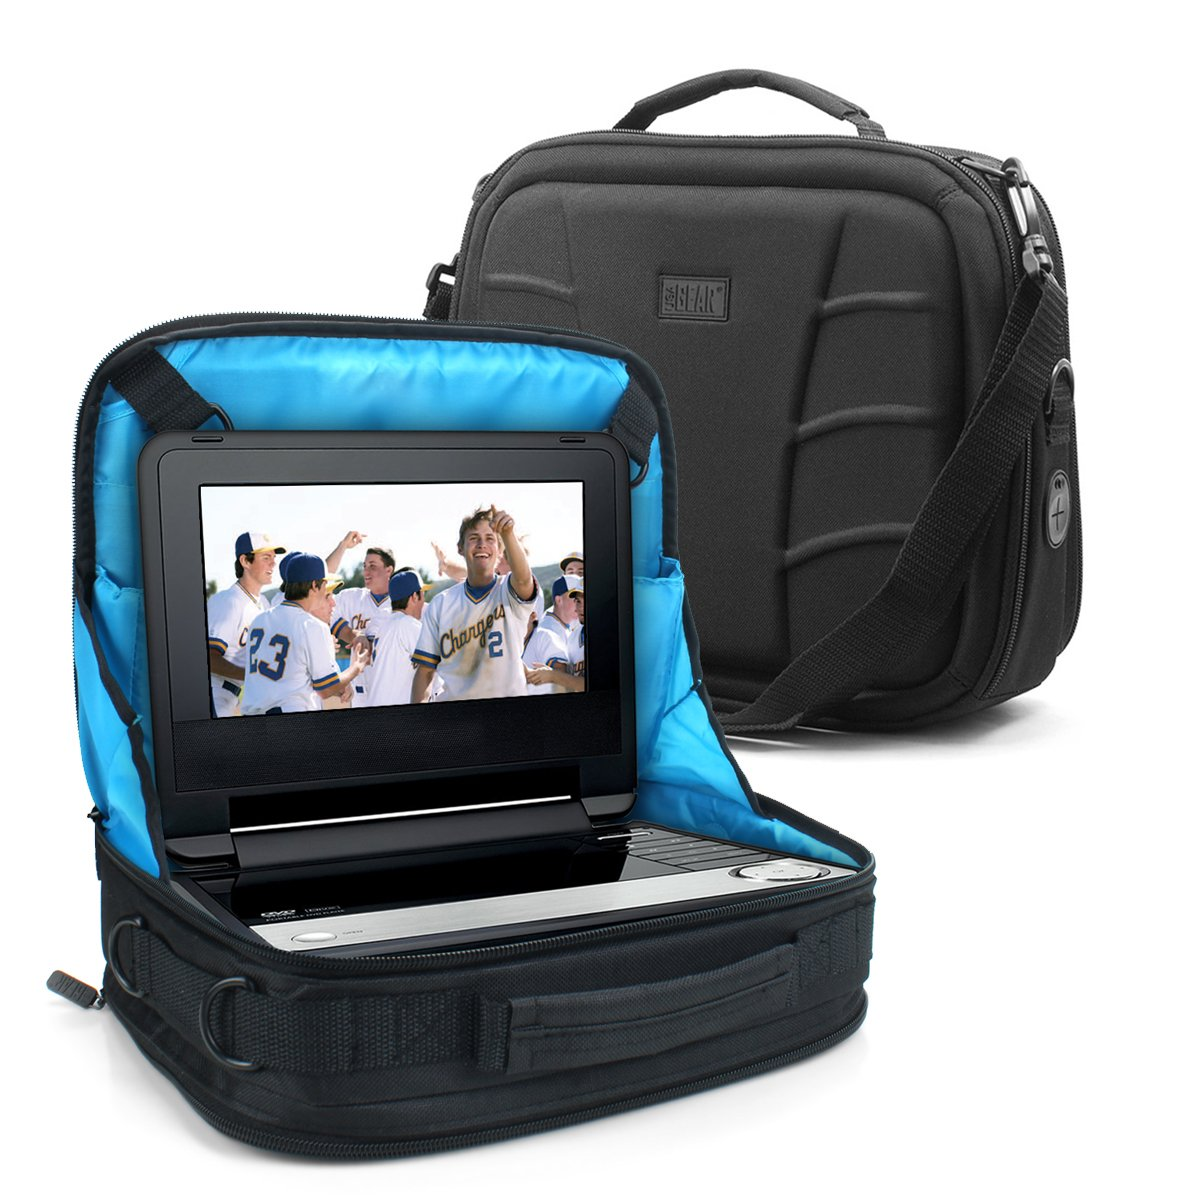 """Portable DVD Player Headrest Car Mount Display Case by USA Gear - Storage Bag Fits DBPOWER 9.5 Inch, Sylvania SDVD10408, Ematic EPD909, Azend BDP-M1061, Sony BDPSX910, more 7-10"""" Blu-ray/DVD Players"""